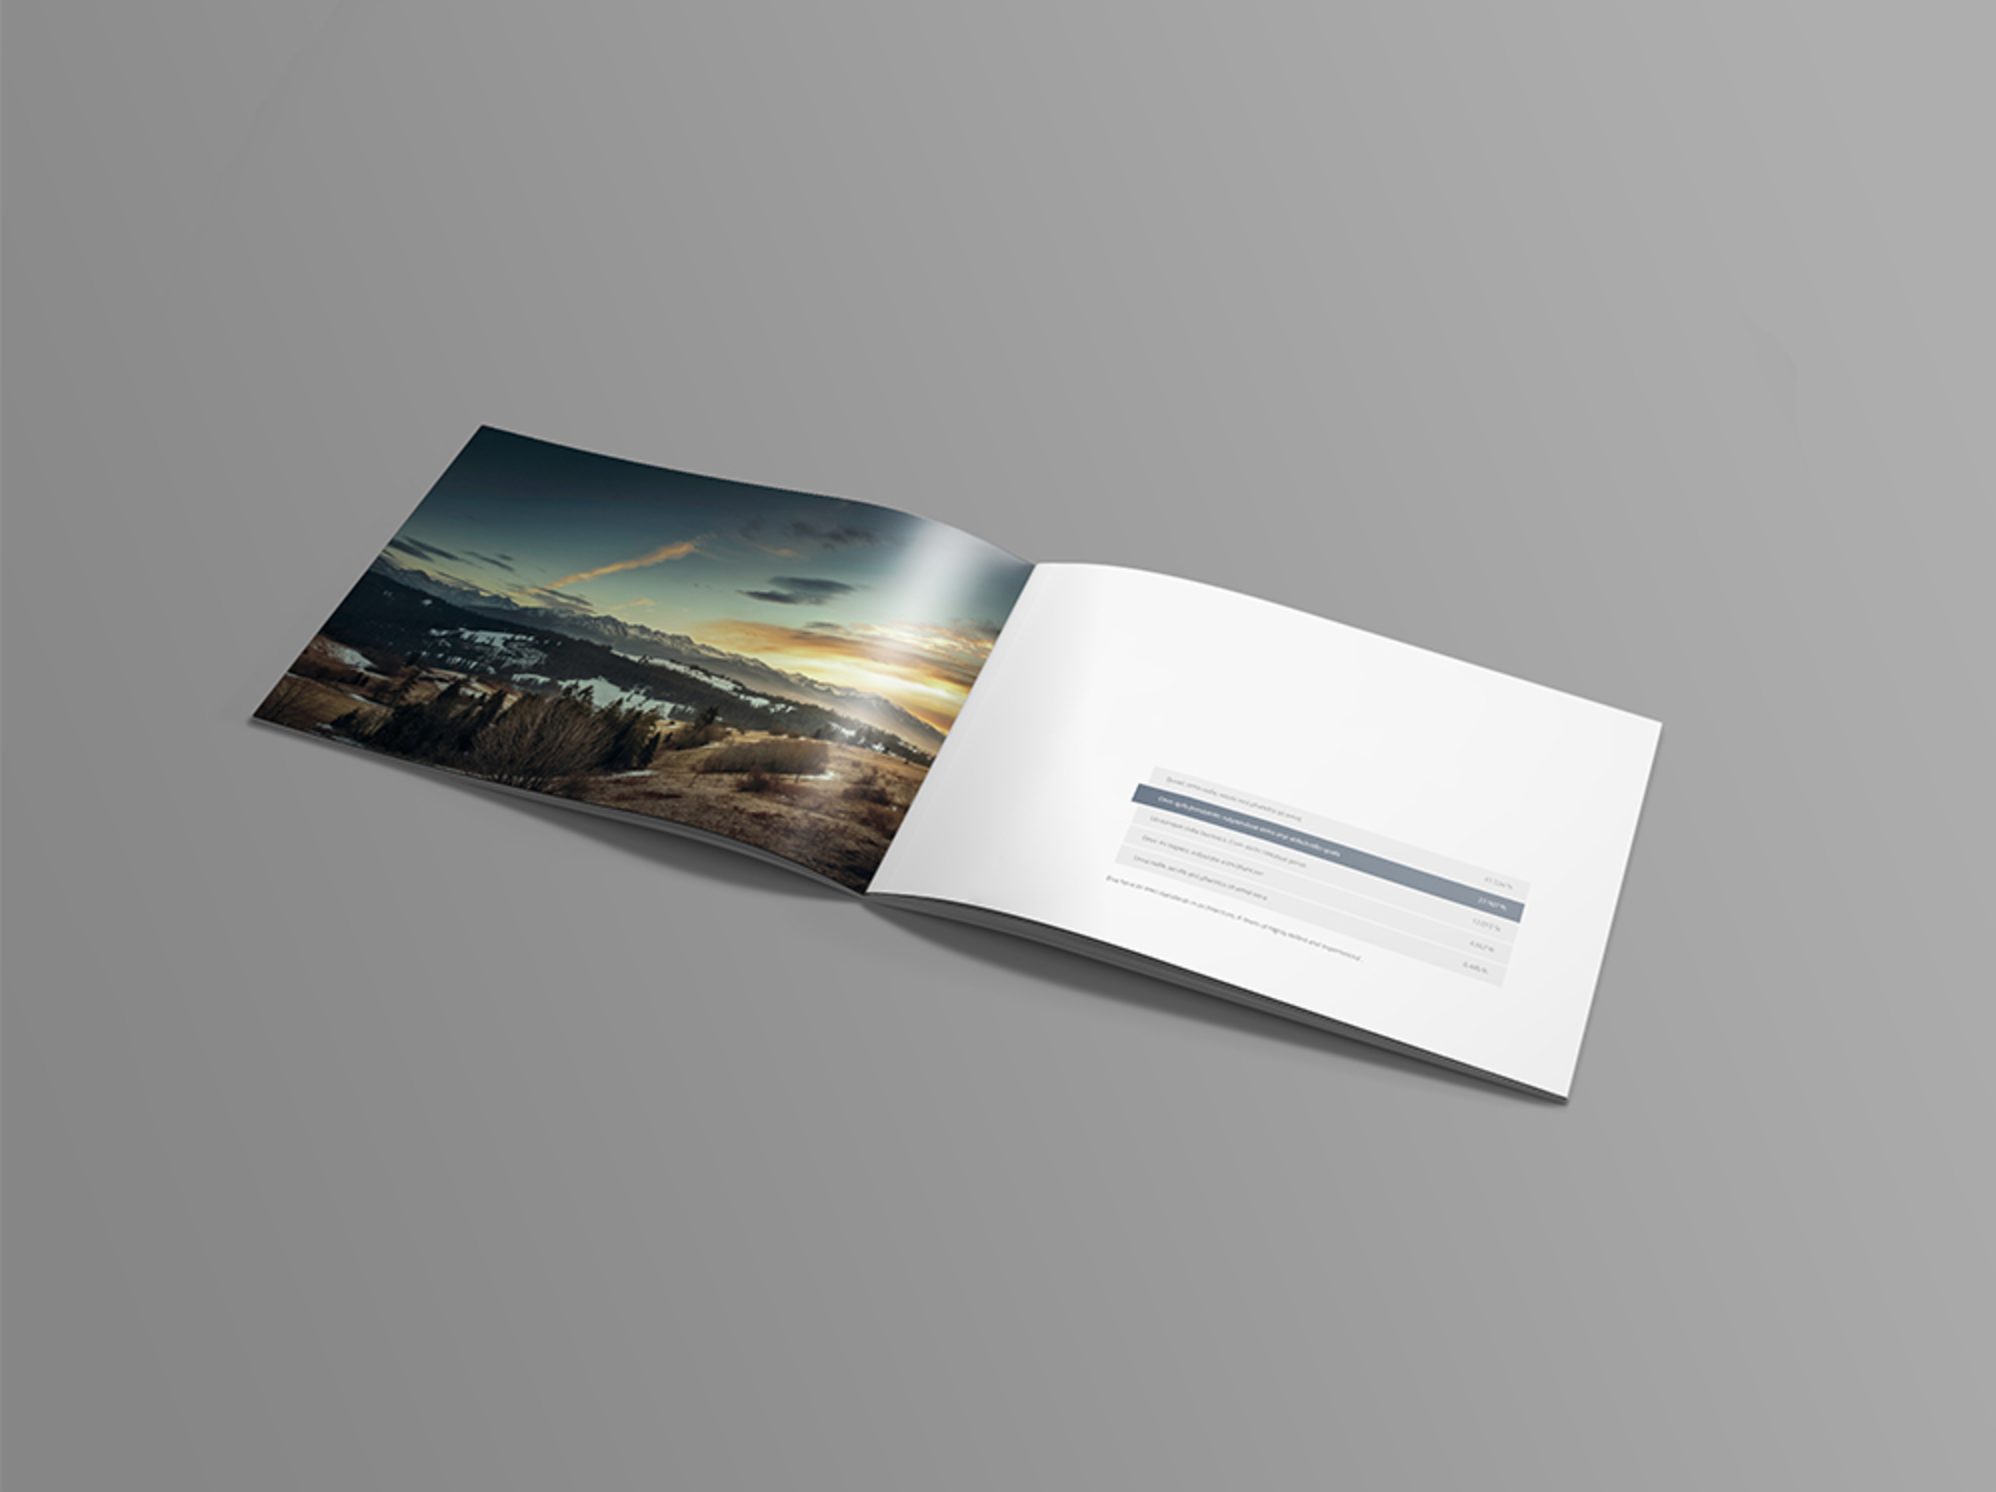 Psd Download Landscape Brochure Mockup